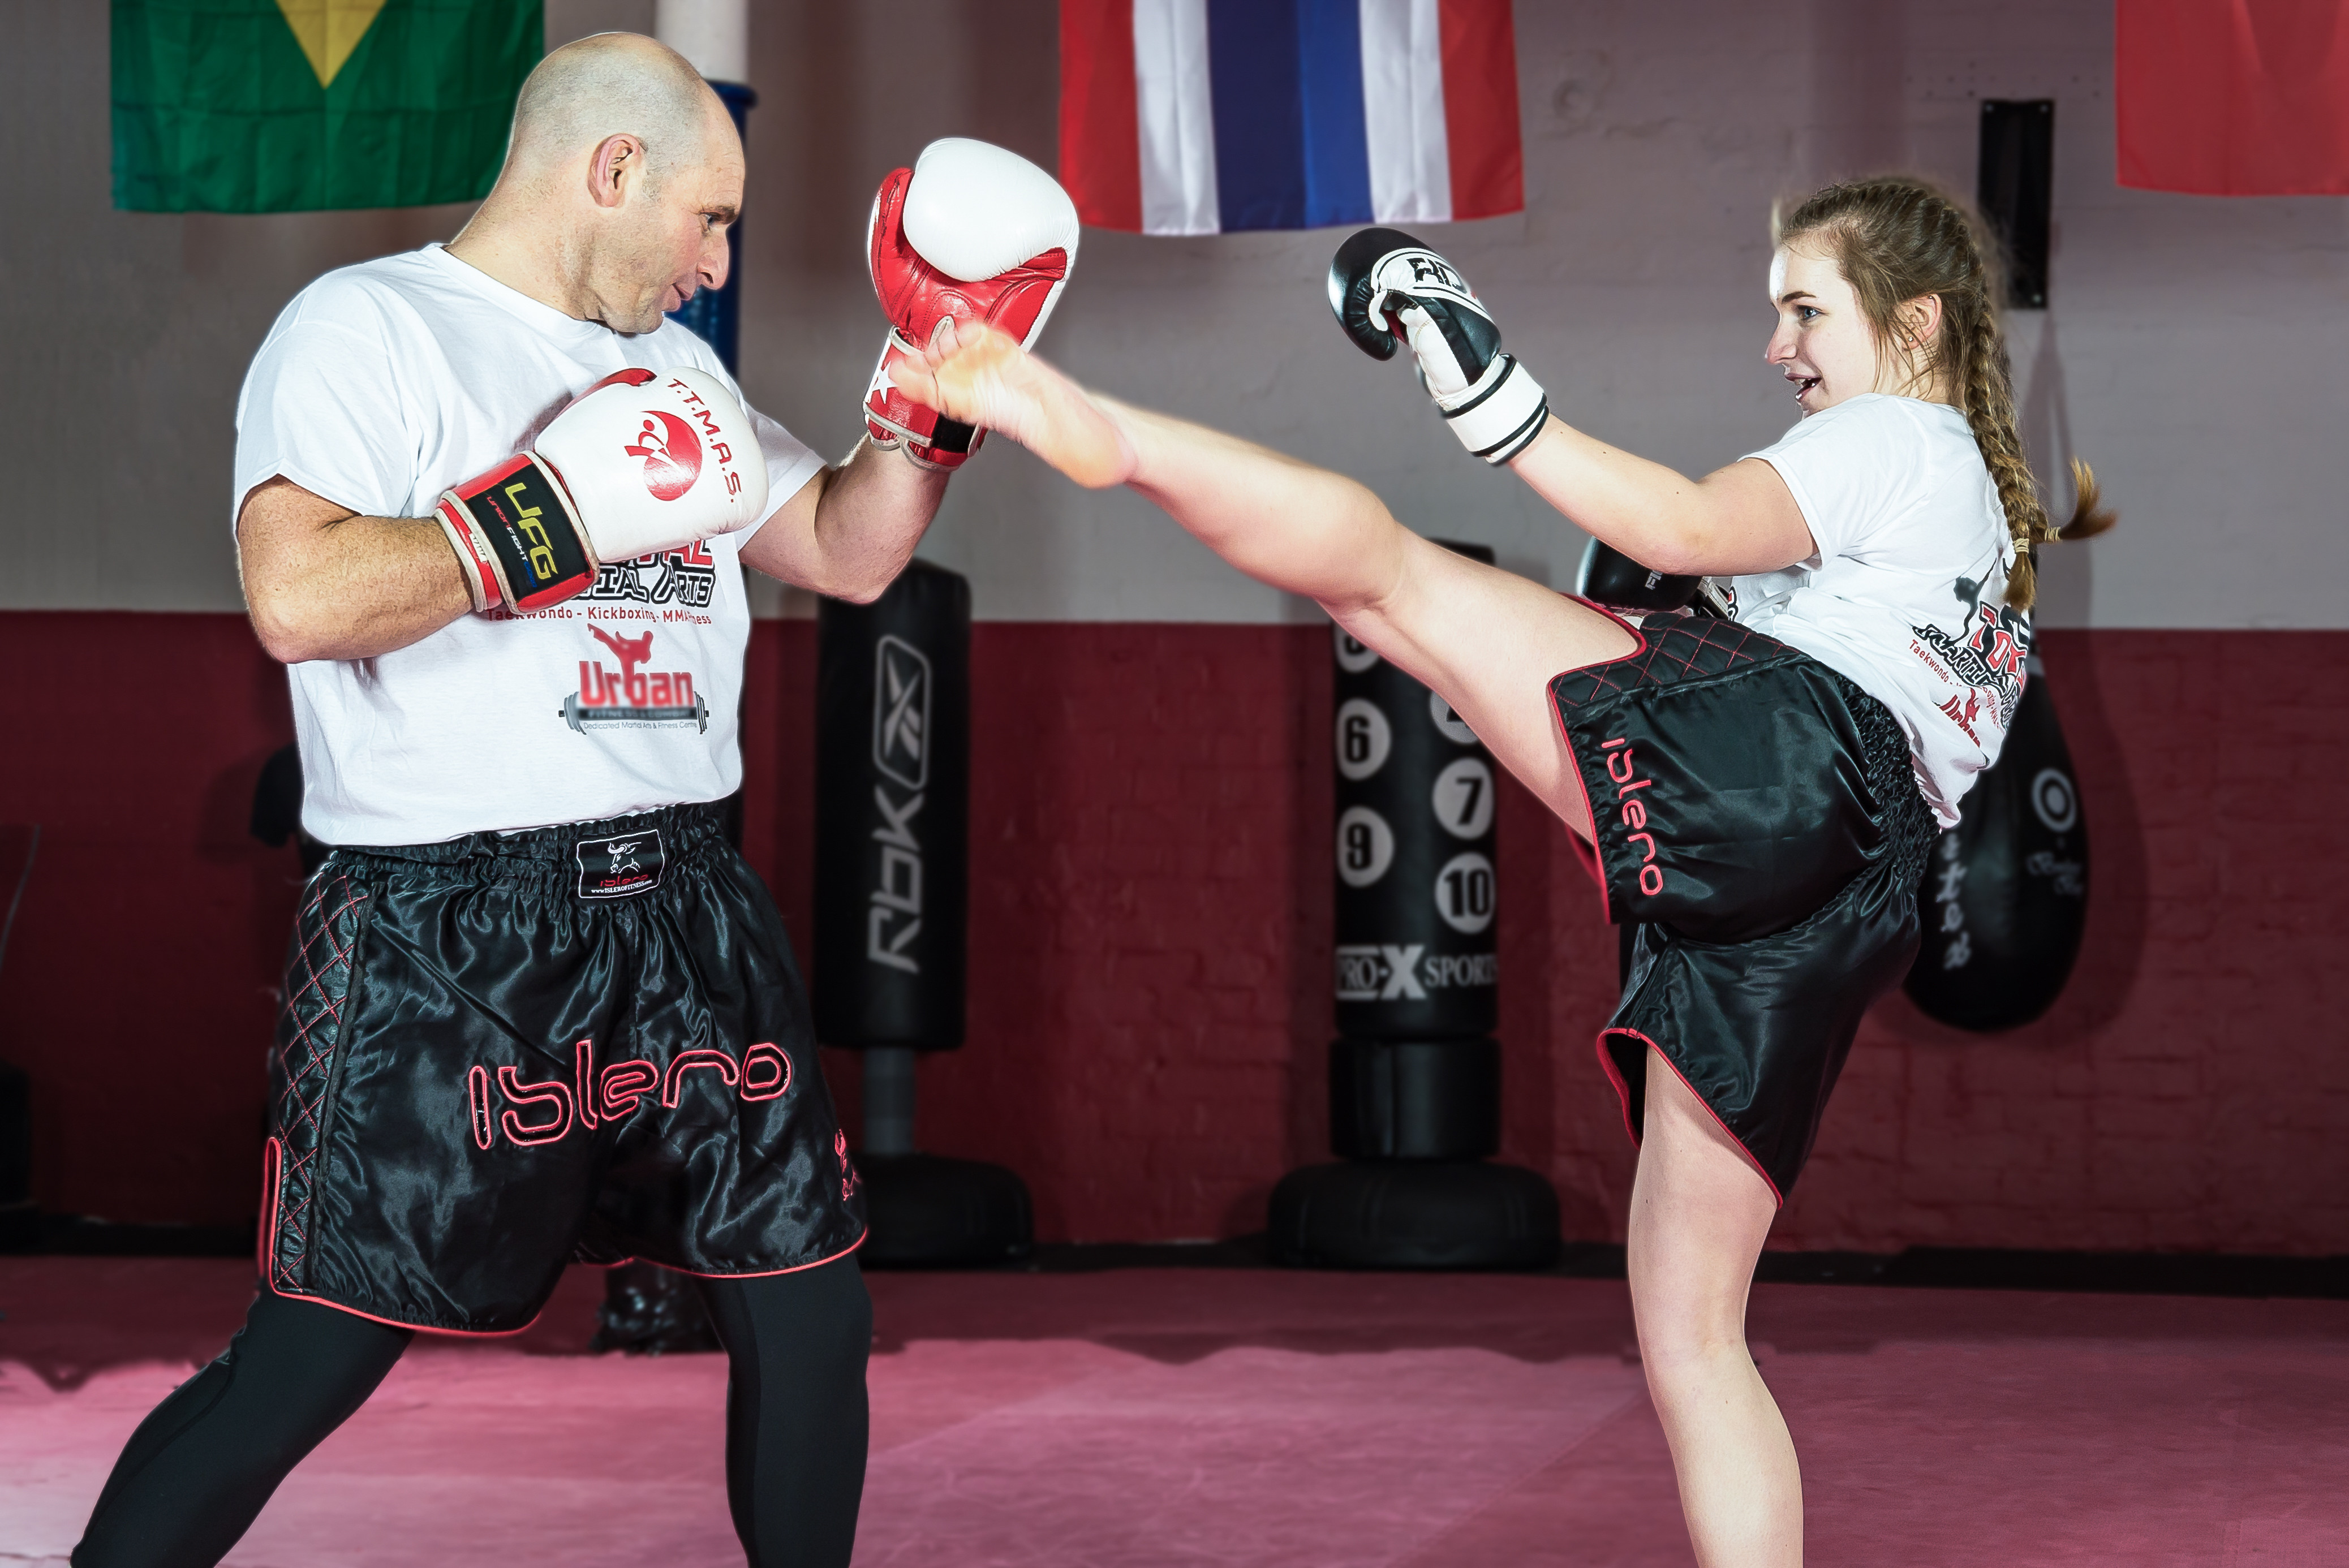 Introductory Kickboxing Course